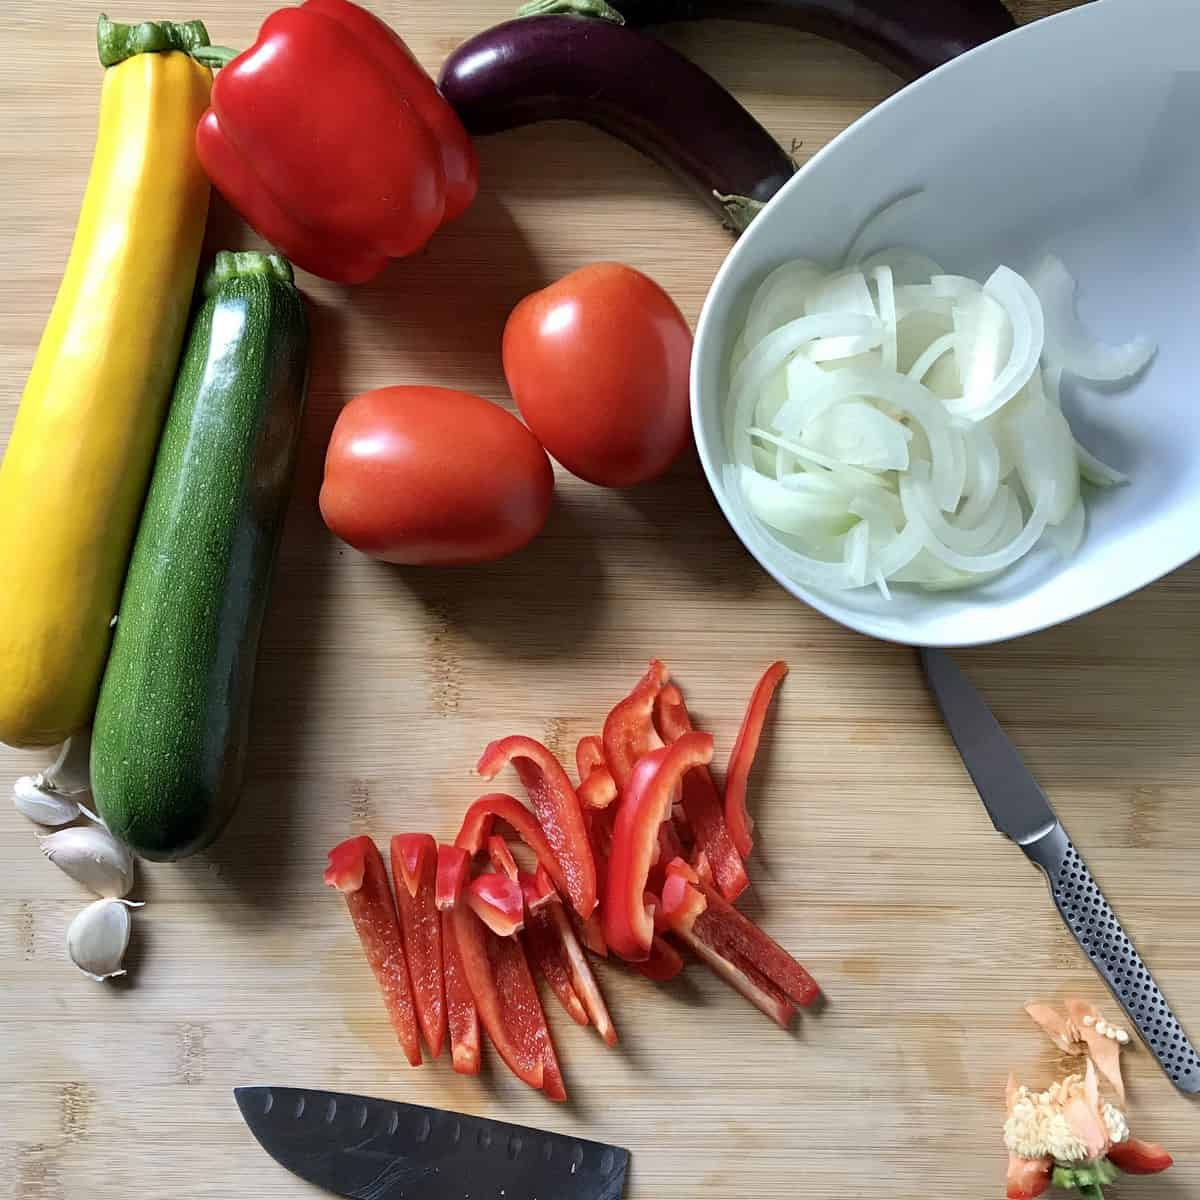 A sliced red pepper on a cutting board, surrounded by other vegetables.